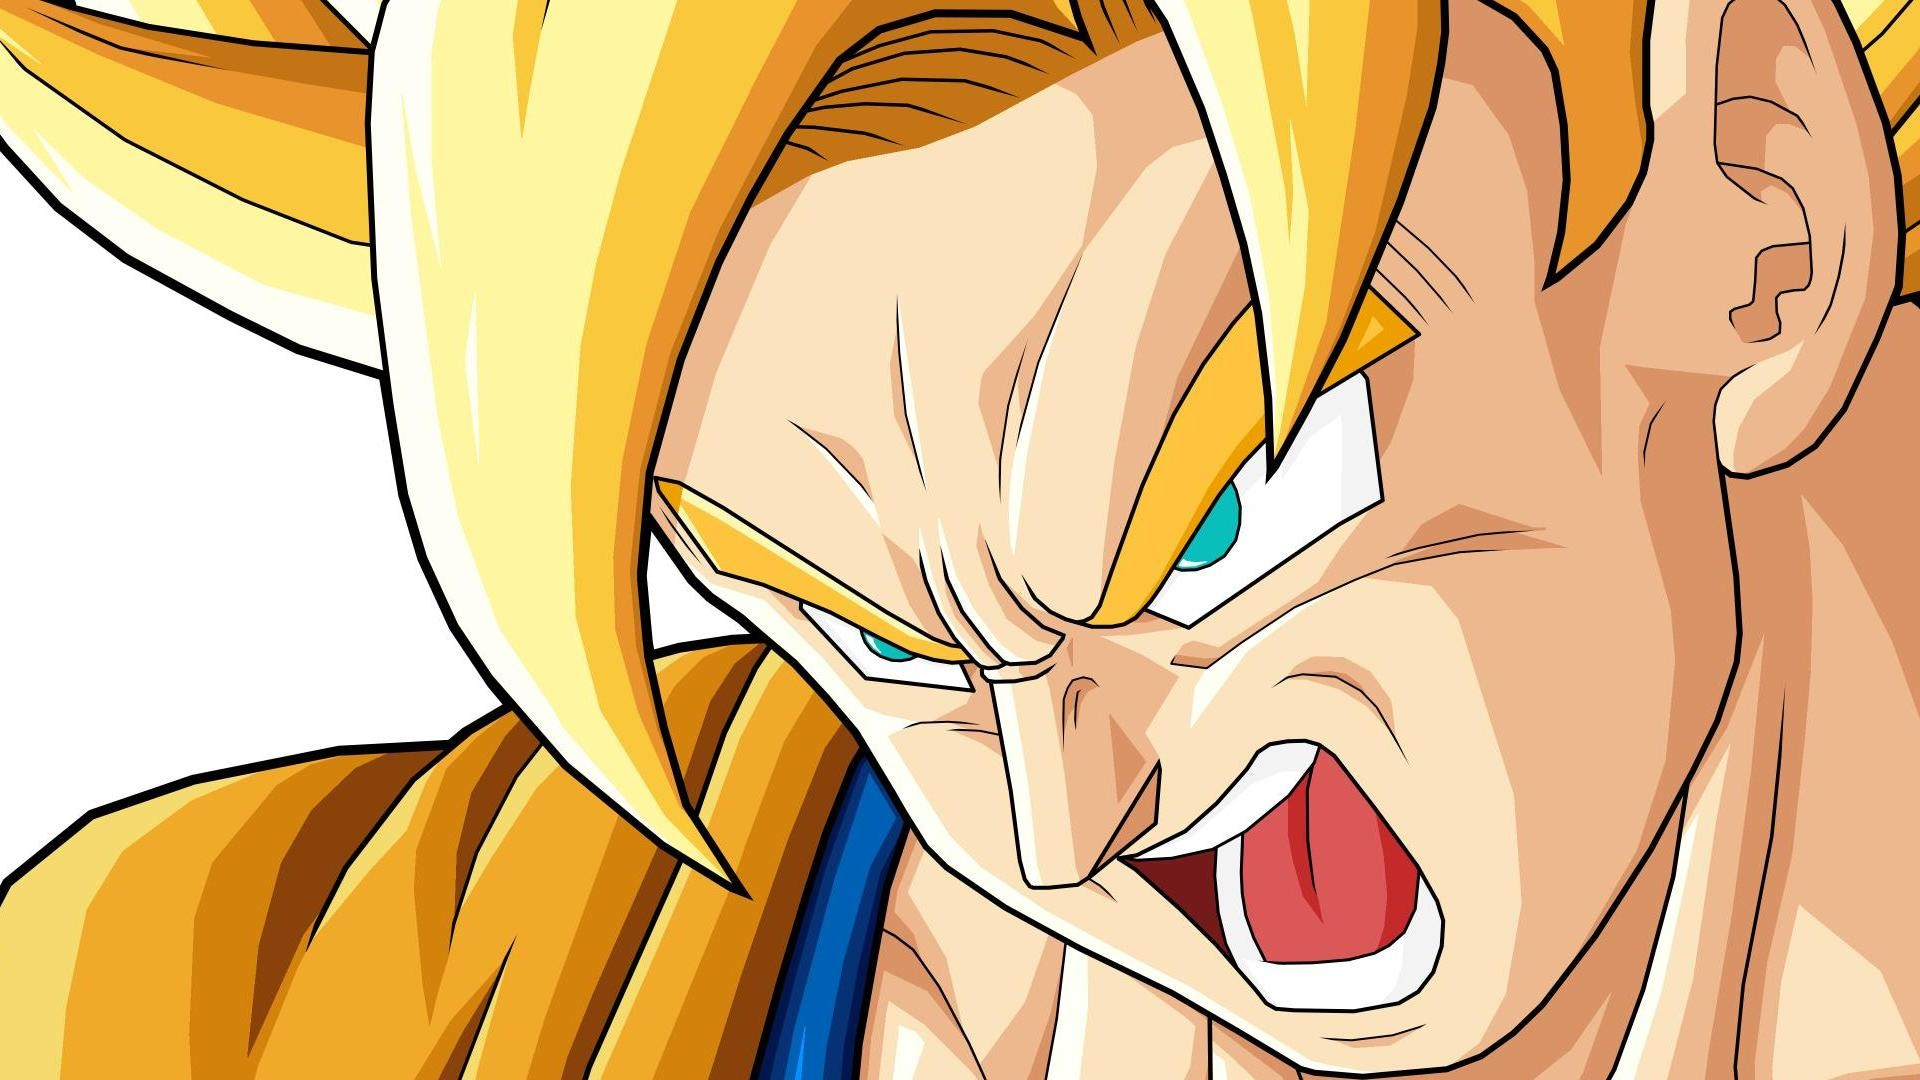 Goku Dragon Wallpaper 1920x1080 Goku Dragon Ball Z wallpopercom 1920x1080